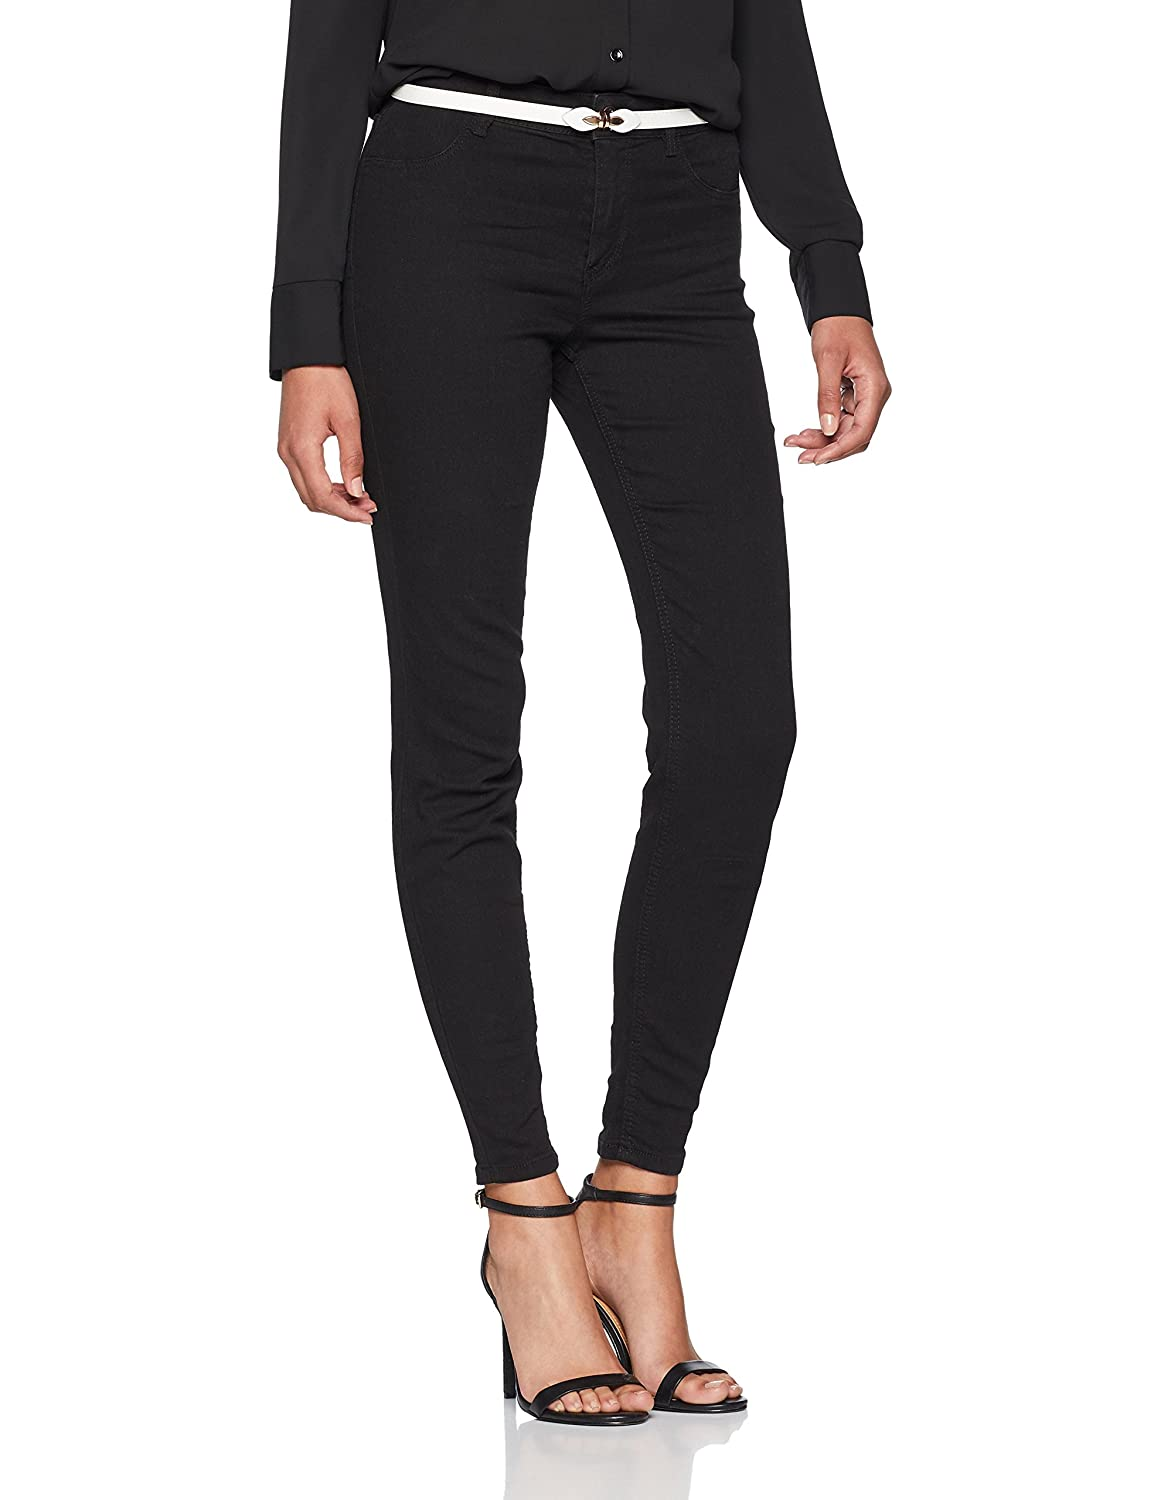 New Look Lead in Skinny, Jeans Donna 5795352